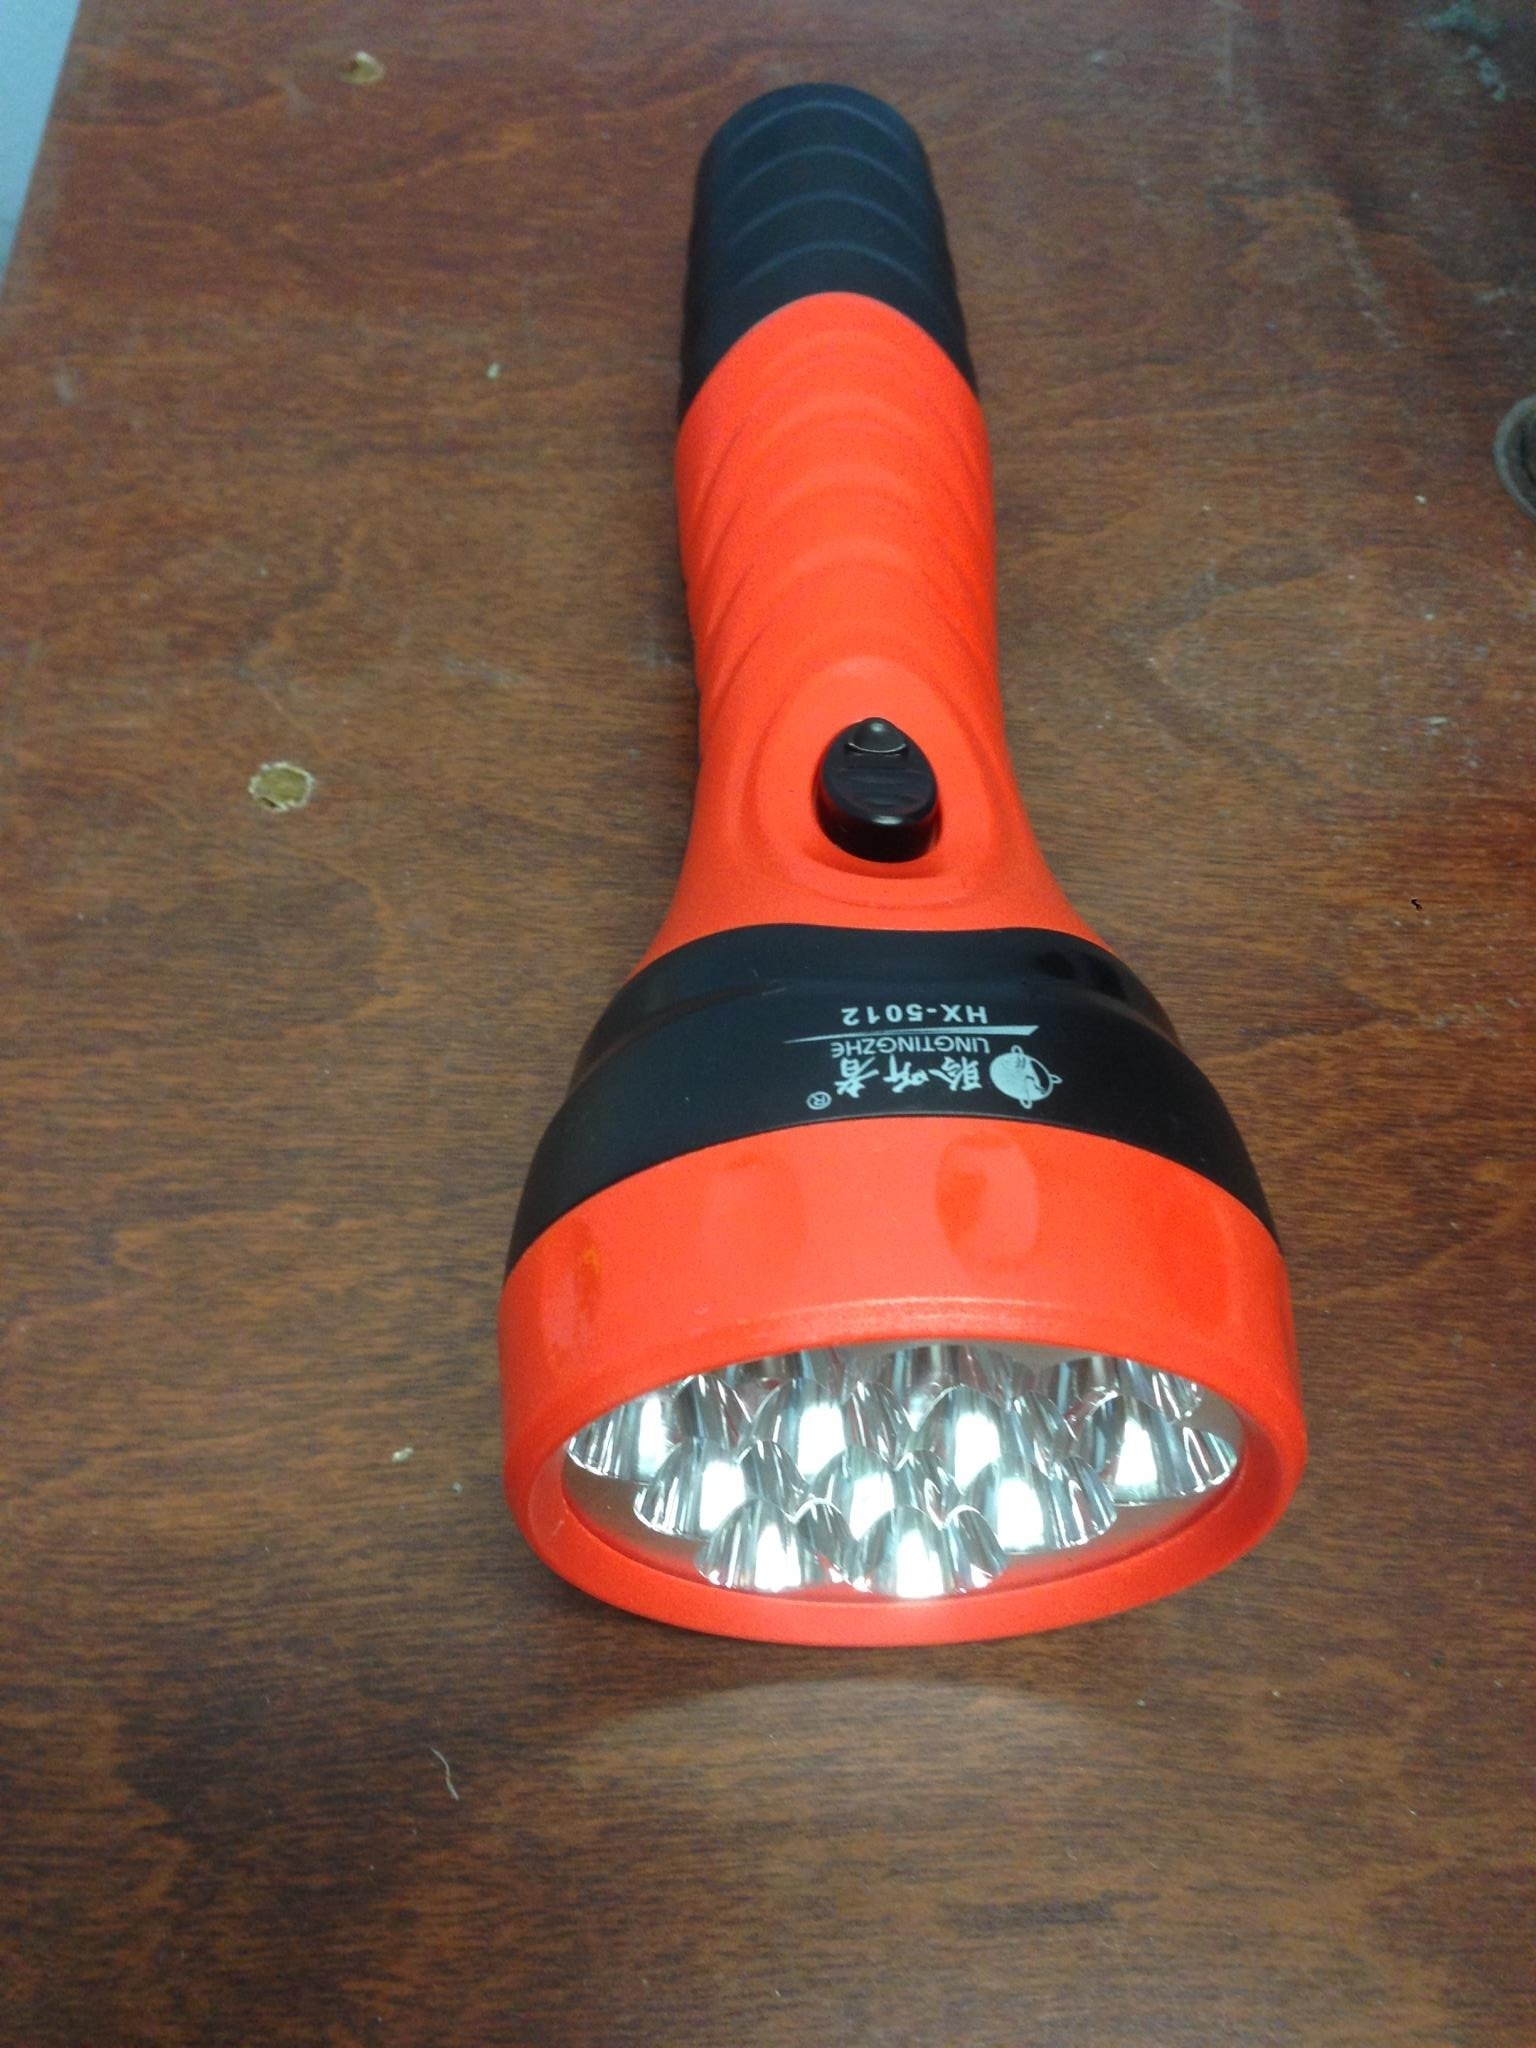 12 LED plastic rechargeable high power emergency searchlight